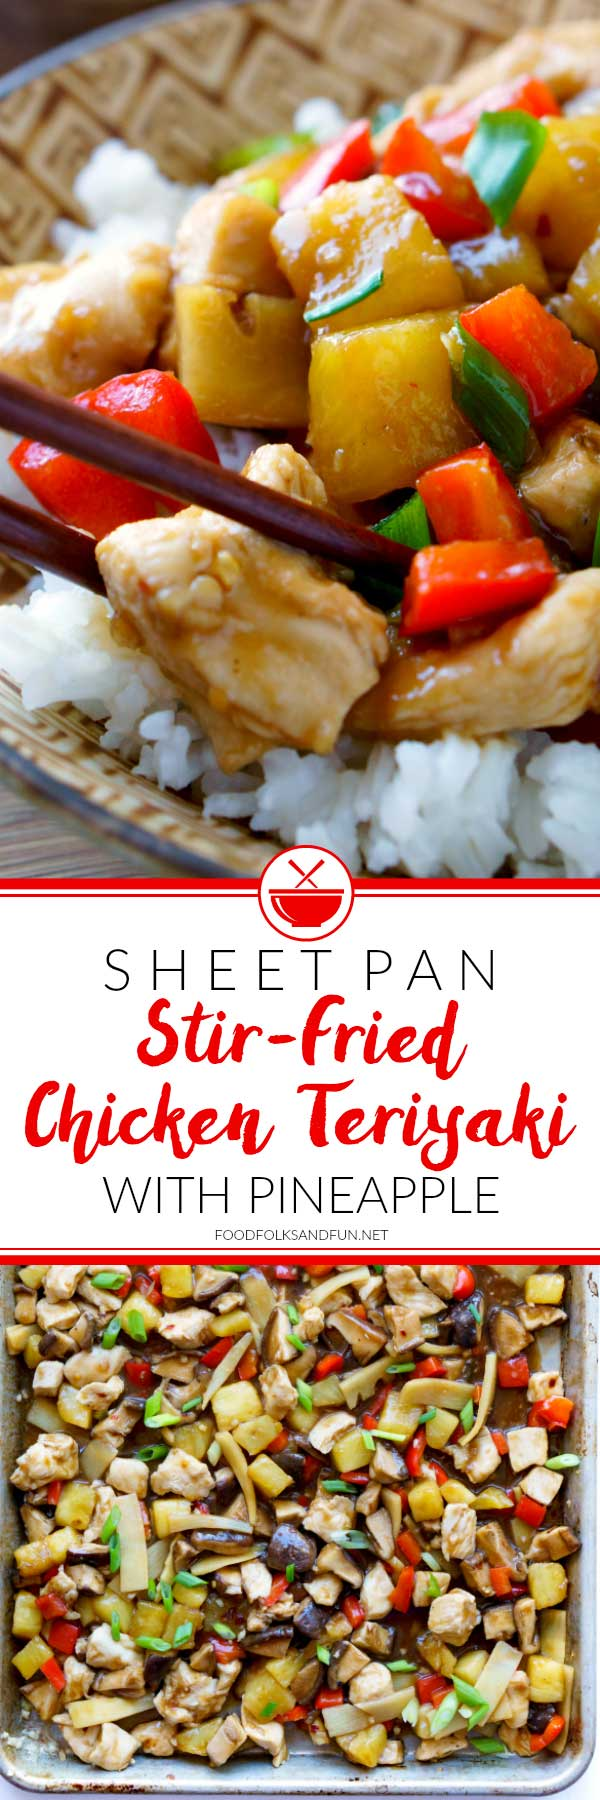 Sheet pan recipes are quick, easy, and all the rage. This Sheet Pan Stir-Fried Chicken Teriyaki with Pineapple is so flavorful, and just the thing for busy weeknights! via @foodfolksandfun